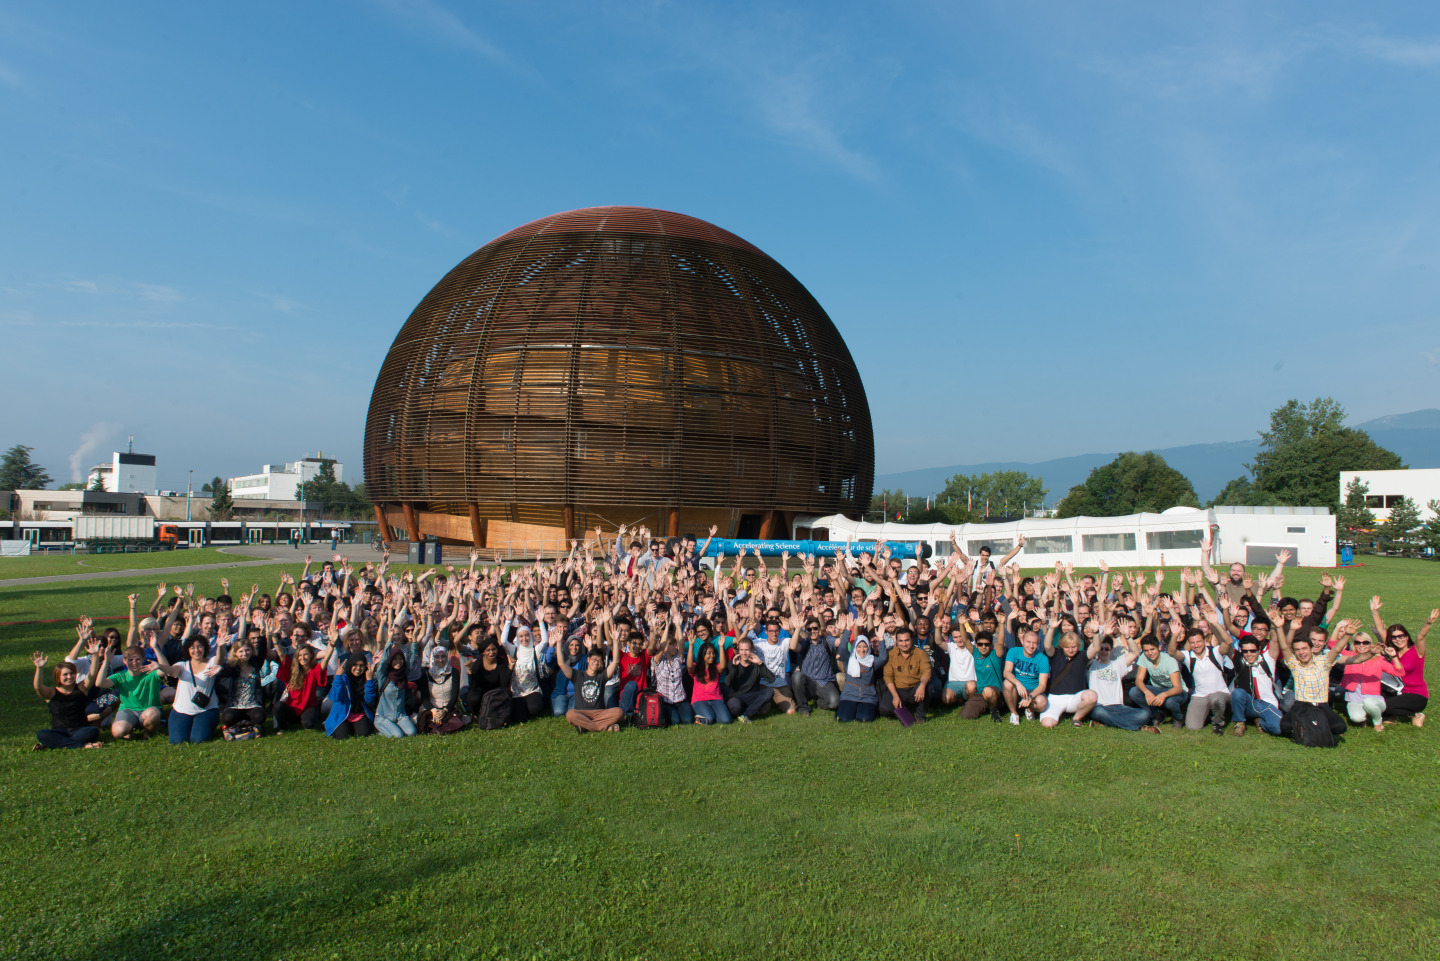 Careers at cern student and graduate opportunities now open for applicants a4acb939 b72b 4ad8 9dab eb967fdba006